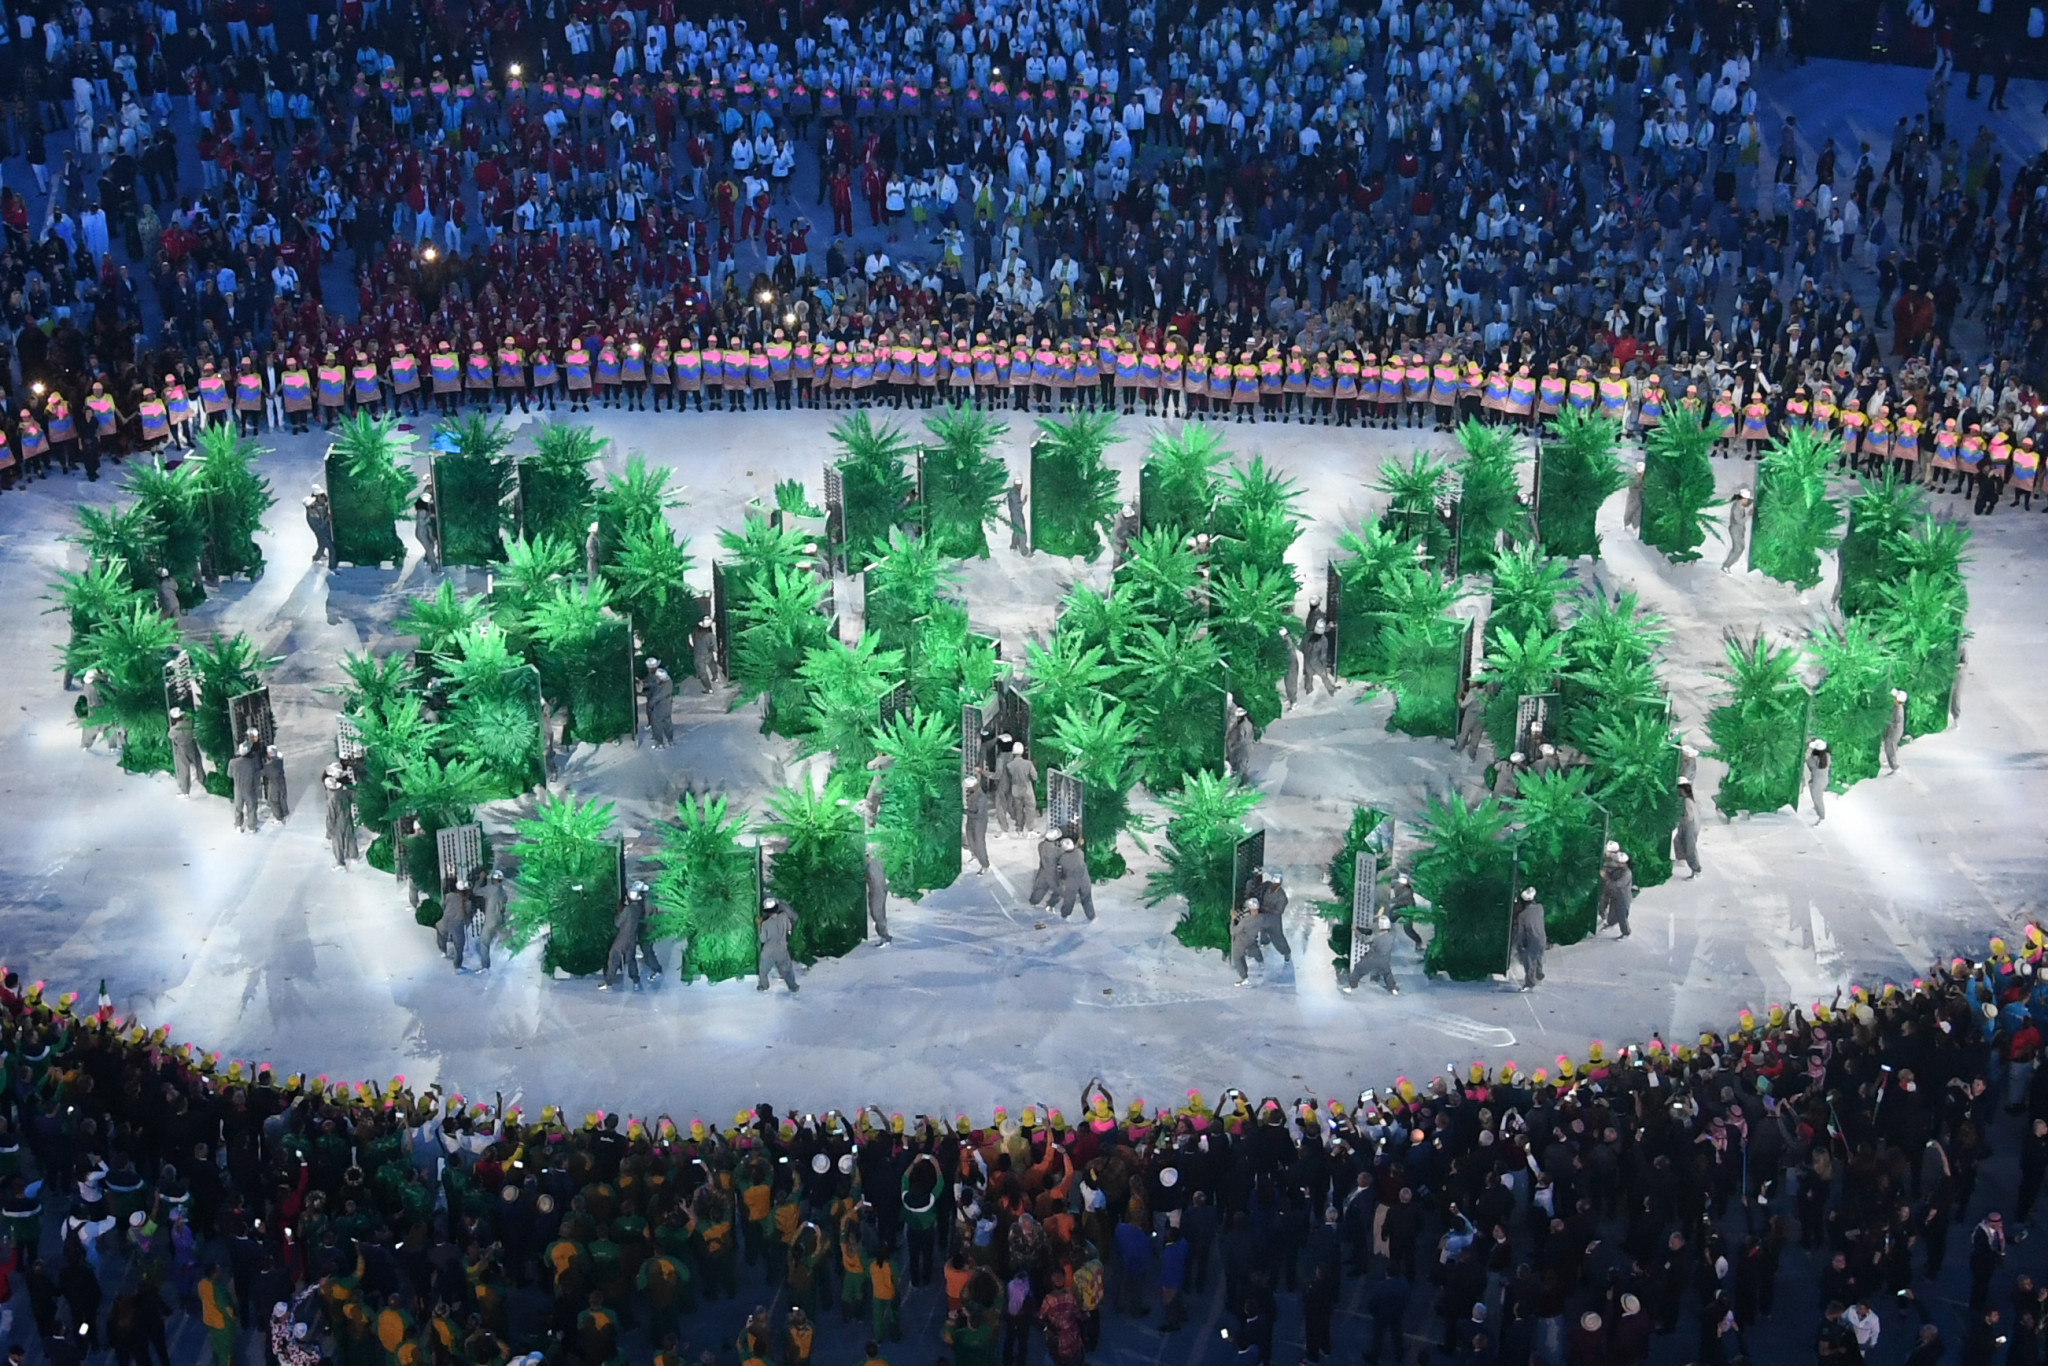 Olympic rings are displayed by the Brazilian delegation during the opening ceremony of the Rio 2016 Olympic Games at the Maracana stadium in Rio de Janeiro on August 5, 2016 ©Getty Images